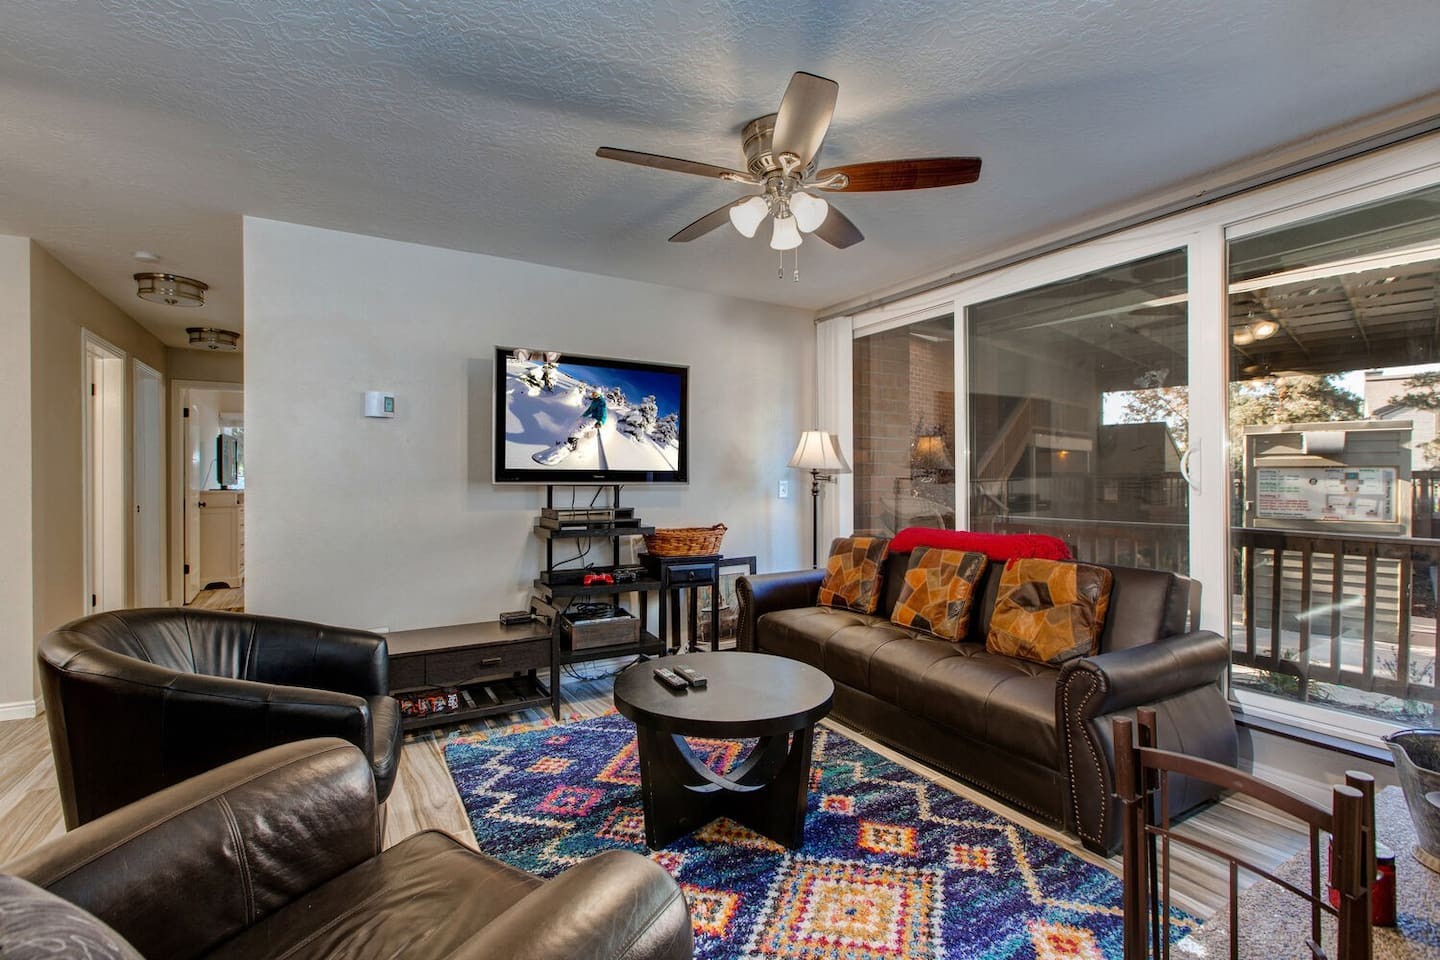 Living room with Smart TV, Leather Furnishings, Fireplace, and Private Balcony Access